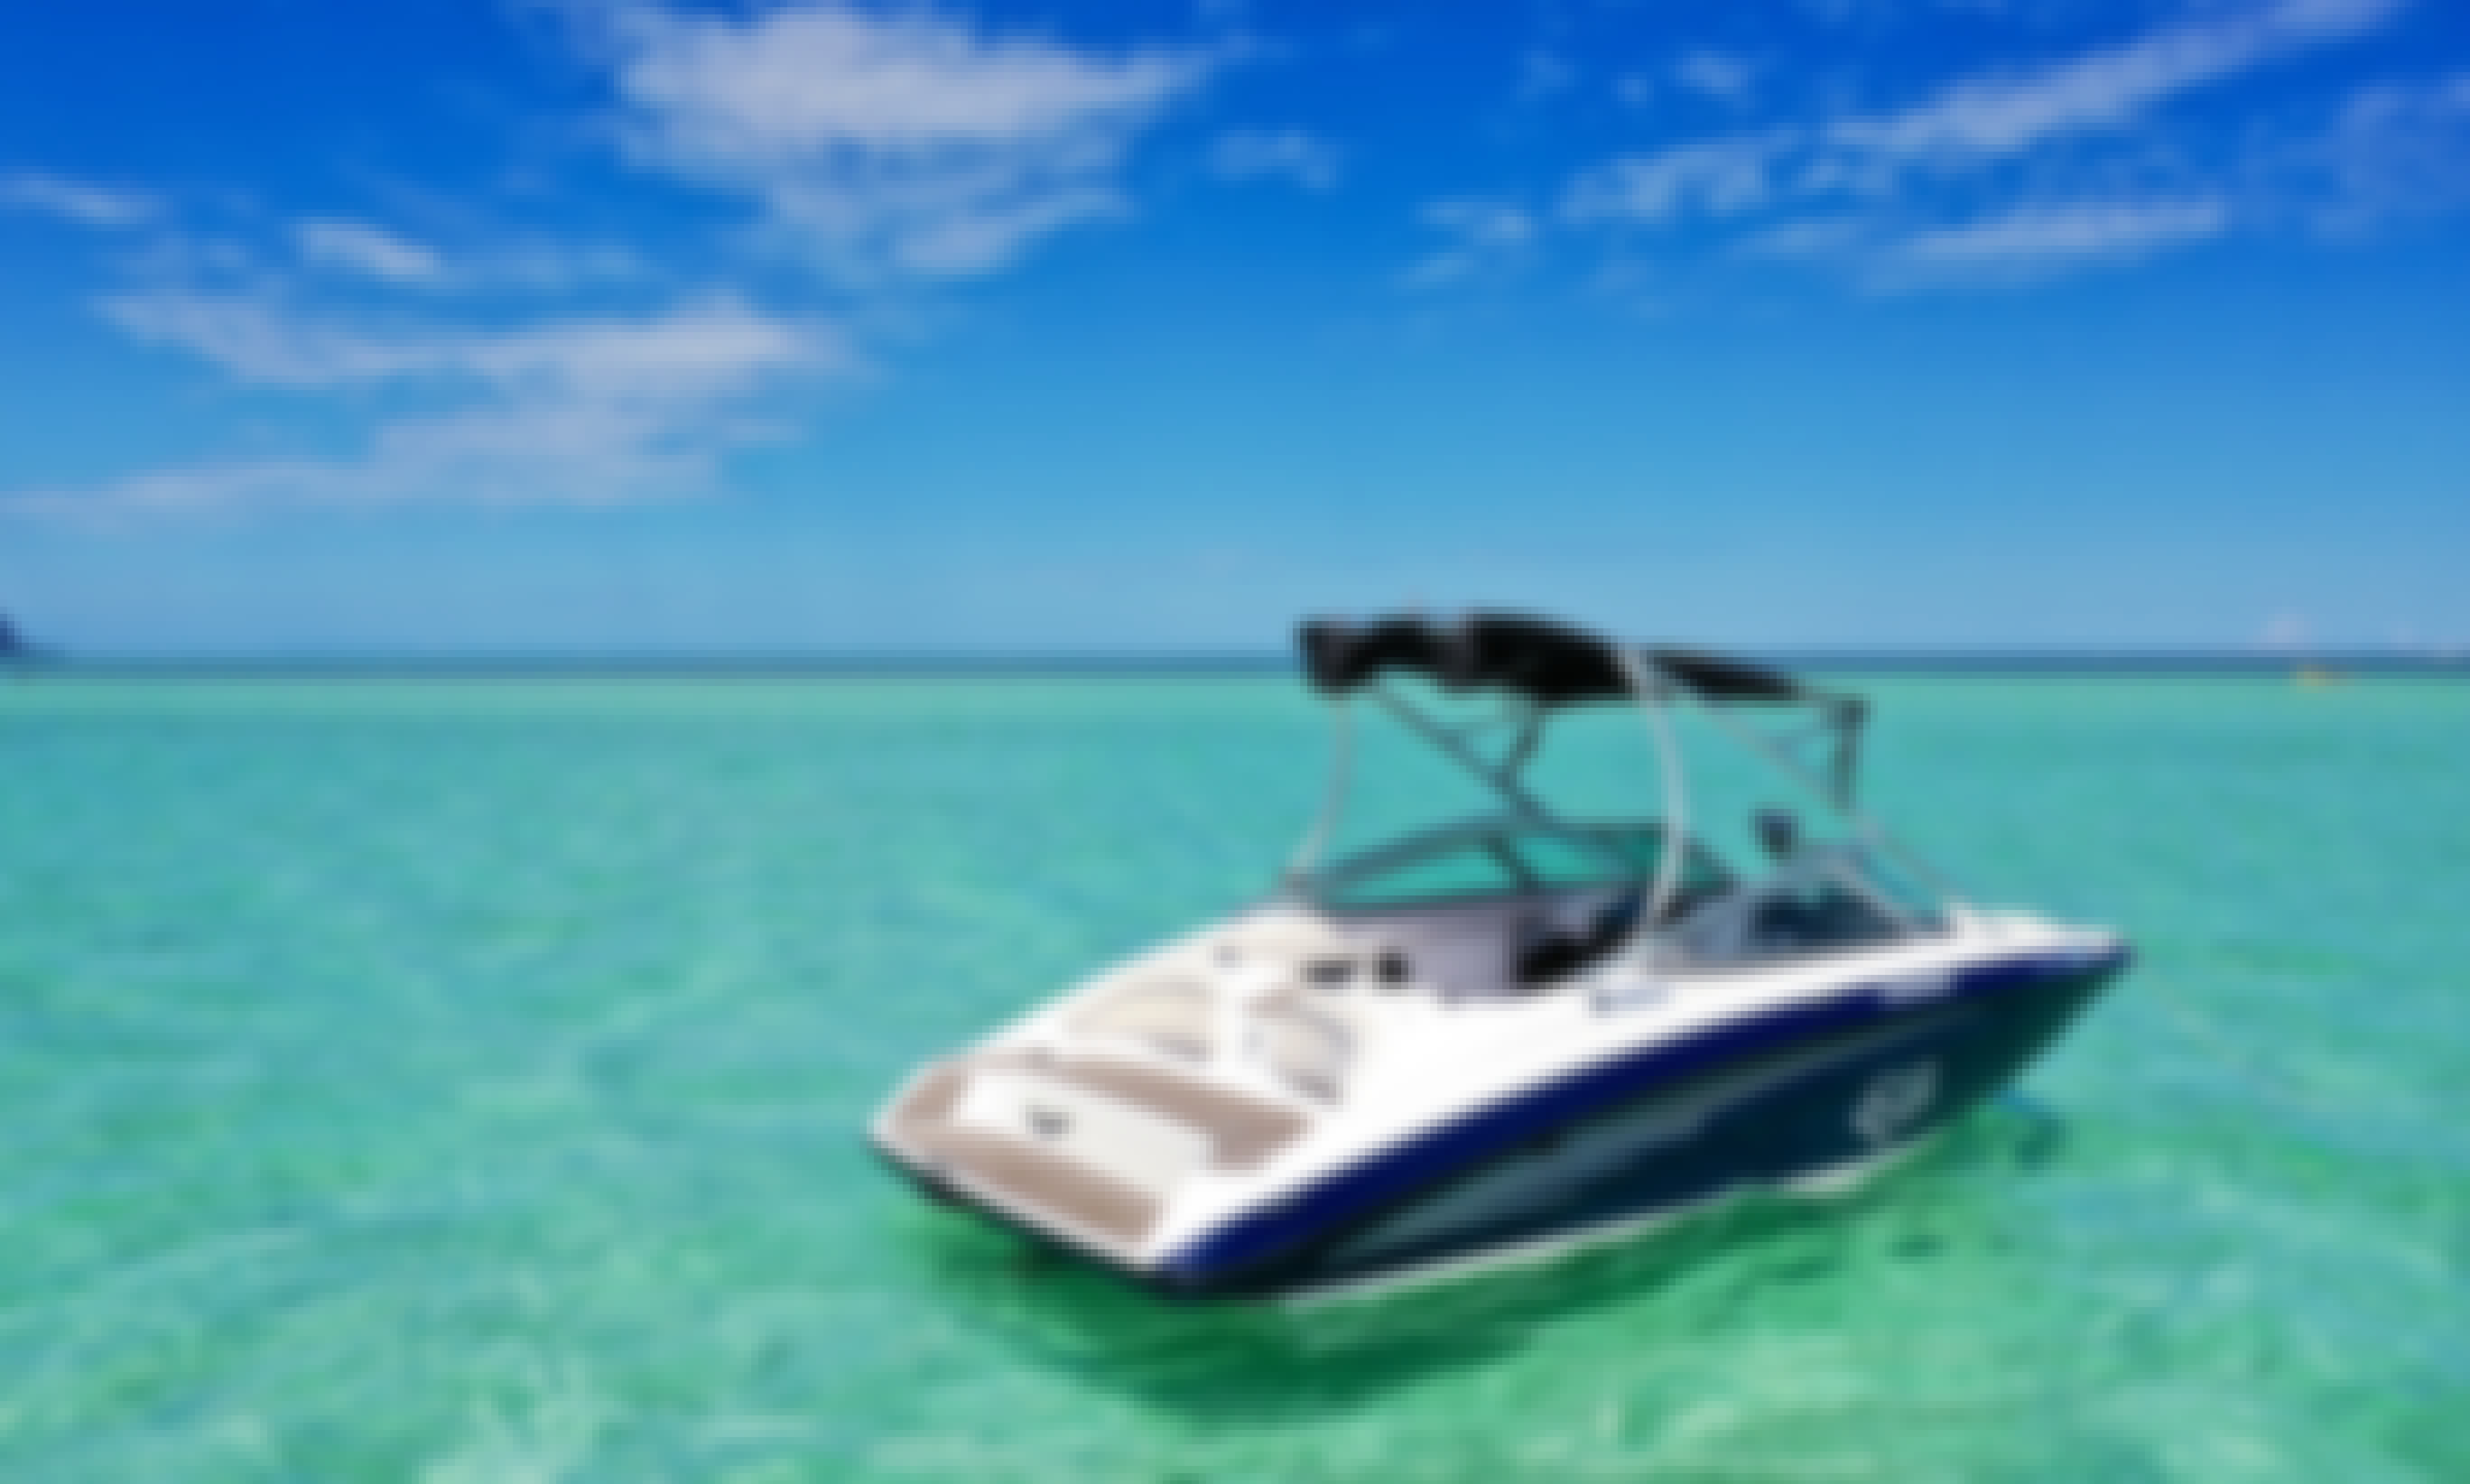 Legendary Oahu Jetboat and Watersports experience